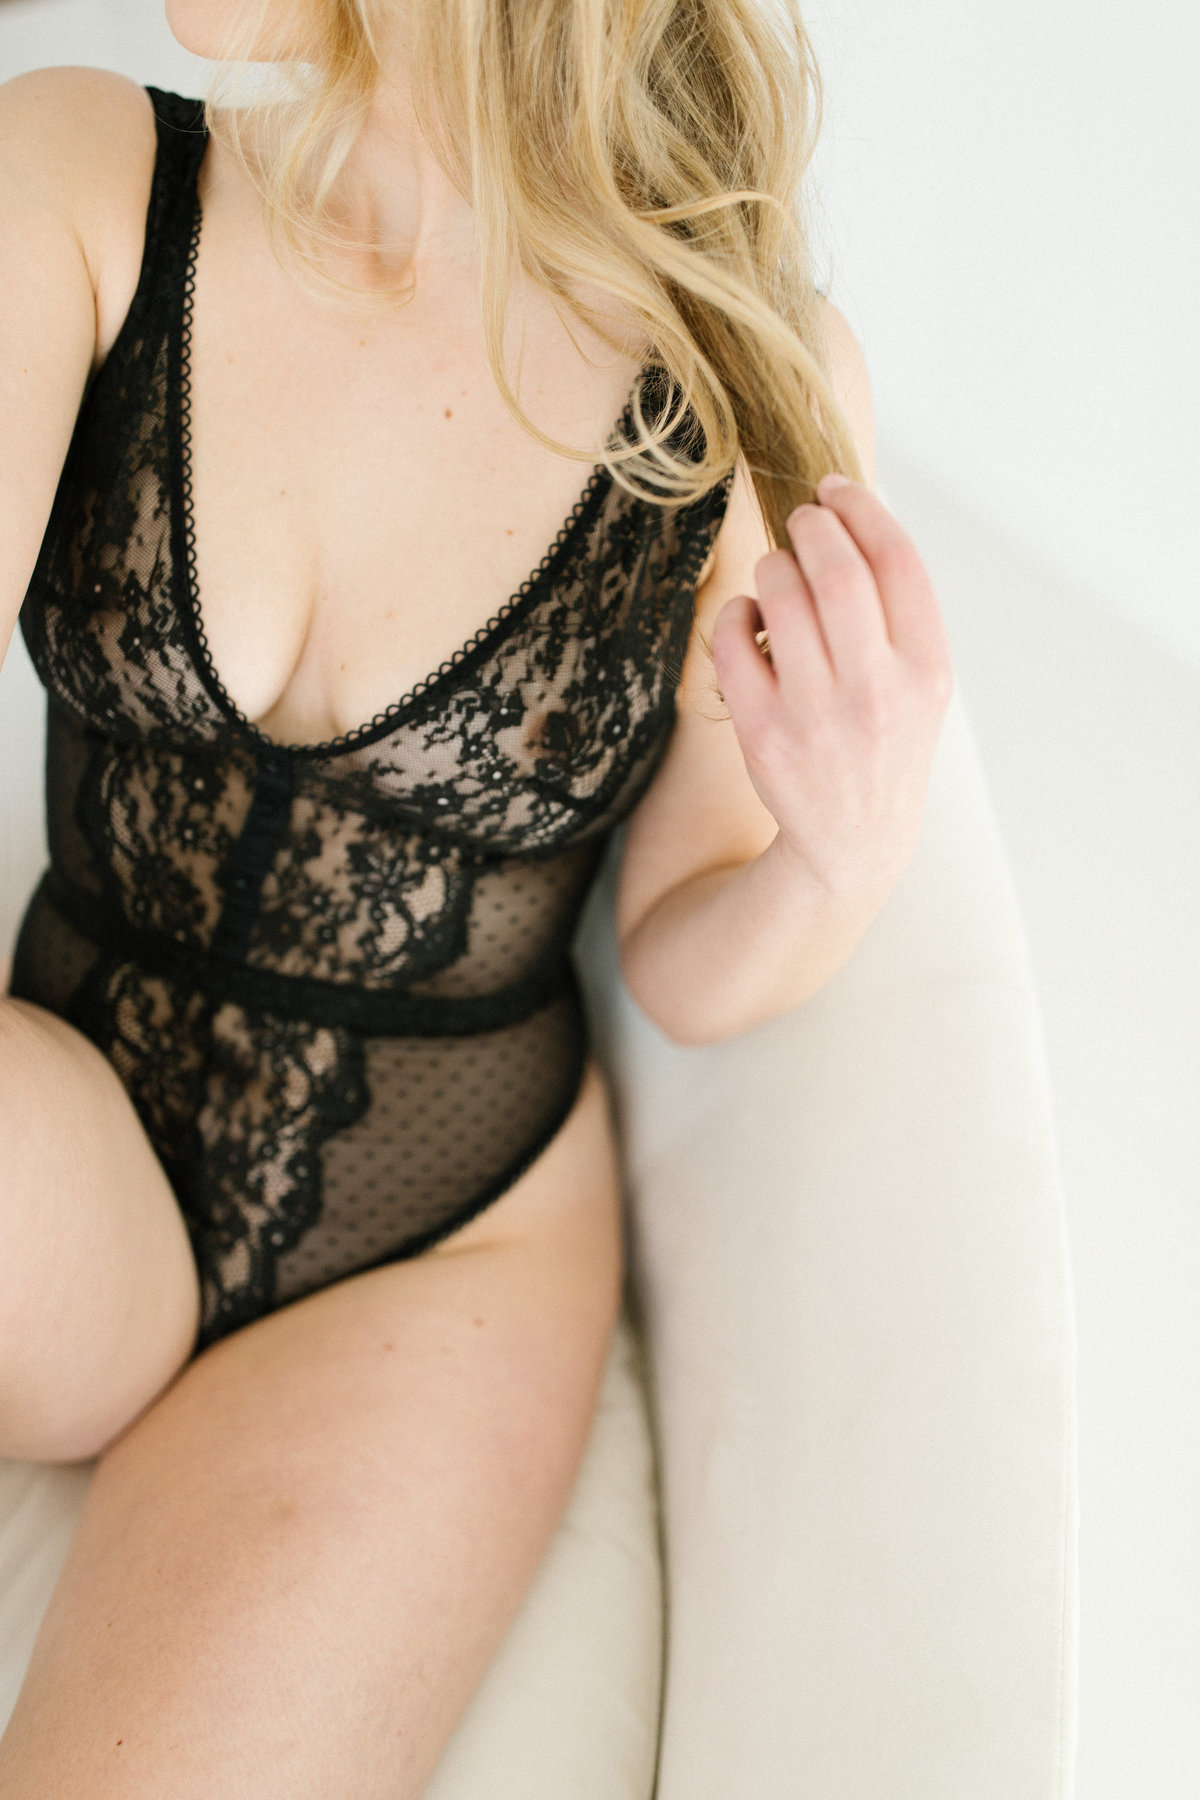 Bridal boudoir session with Chicago boudoir photographer Laurie Baker